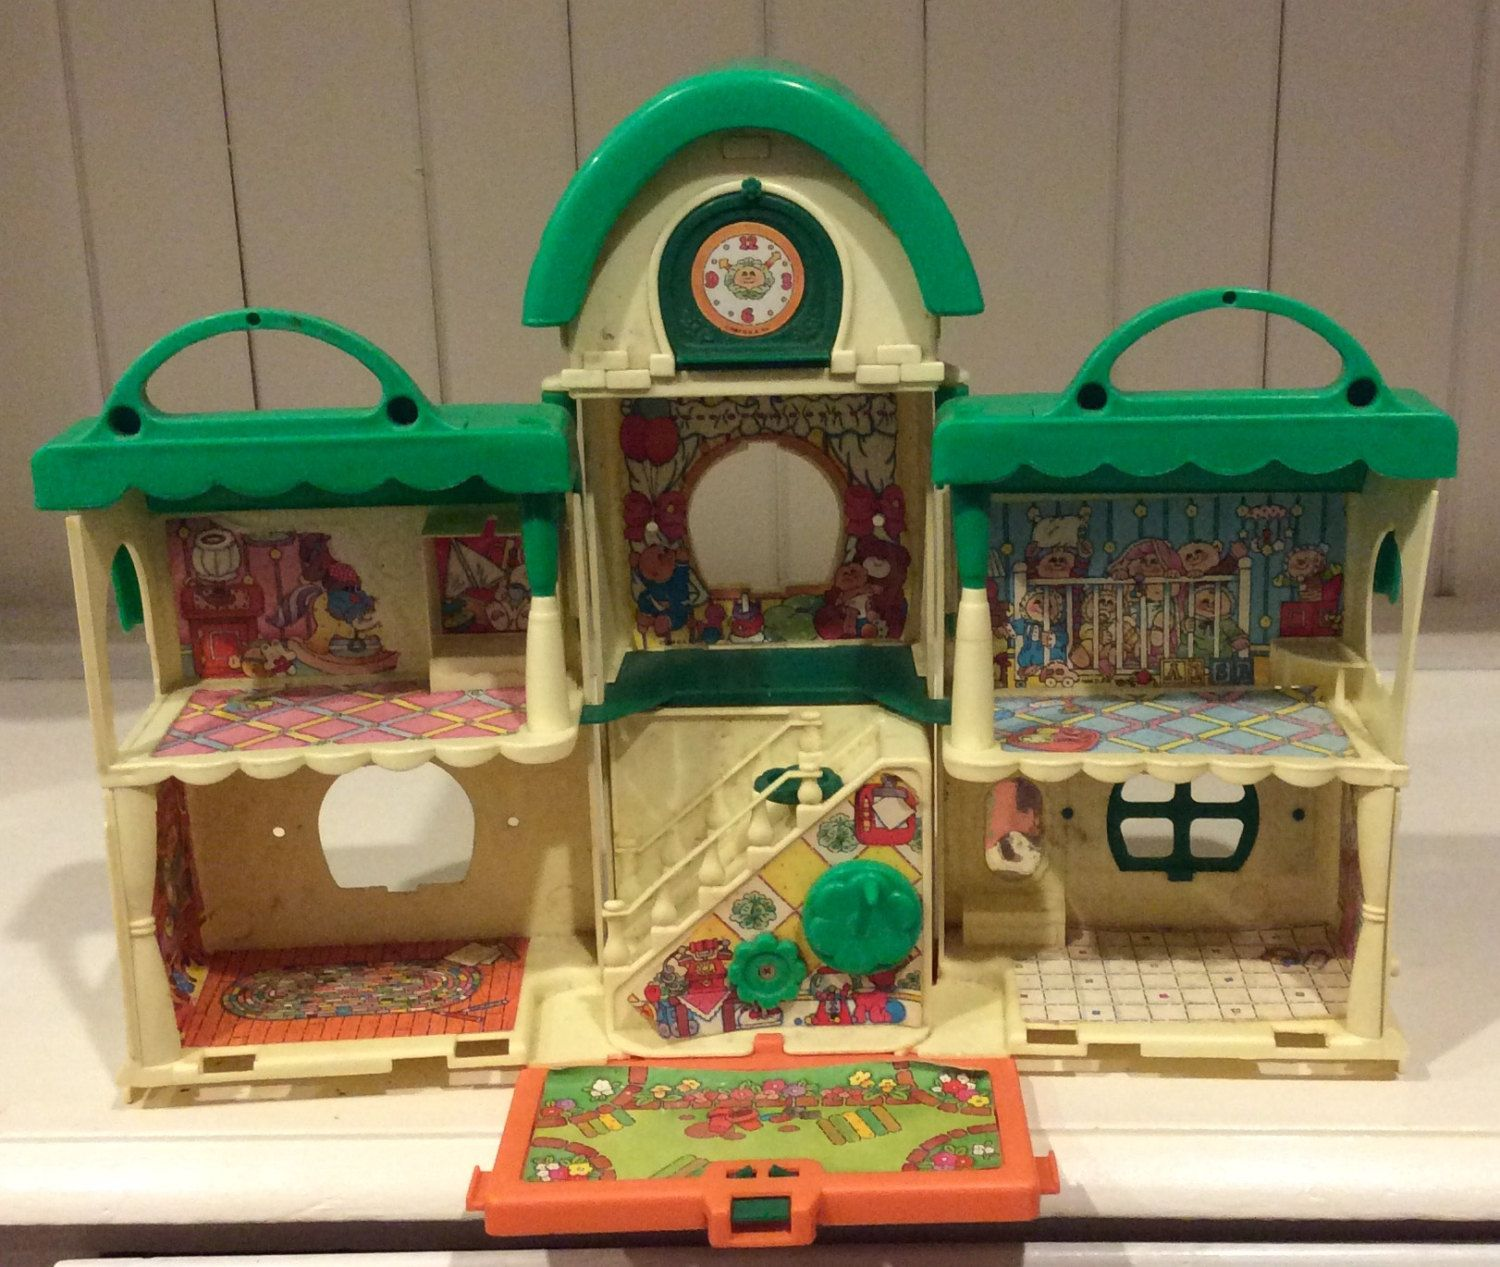 Reserved Cabbage Patch Kids Babyland General Hospital Play Kids Play Set Cabbage Patch Kids Cabbage Patch